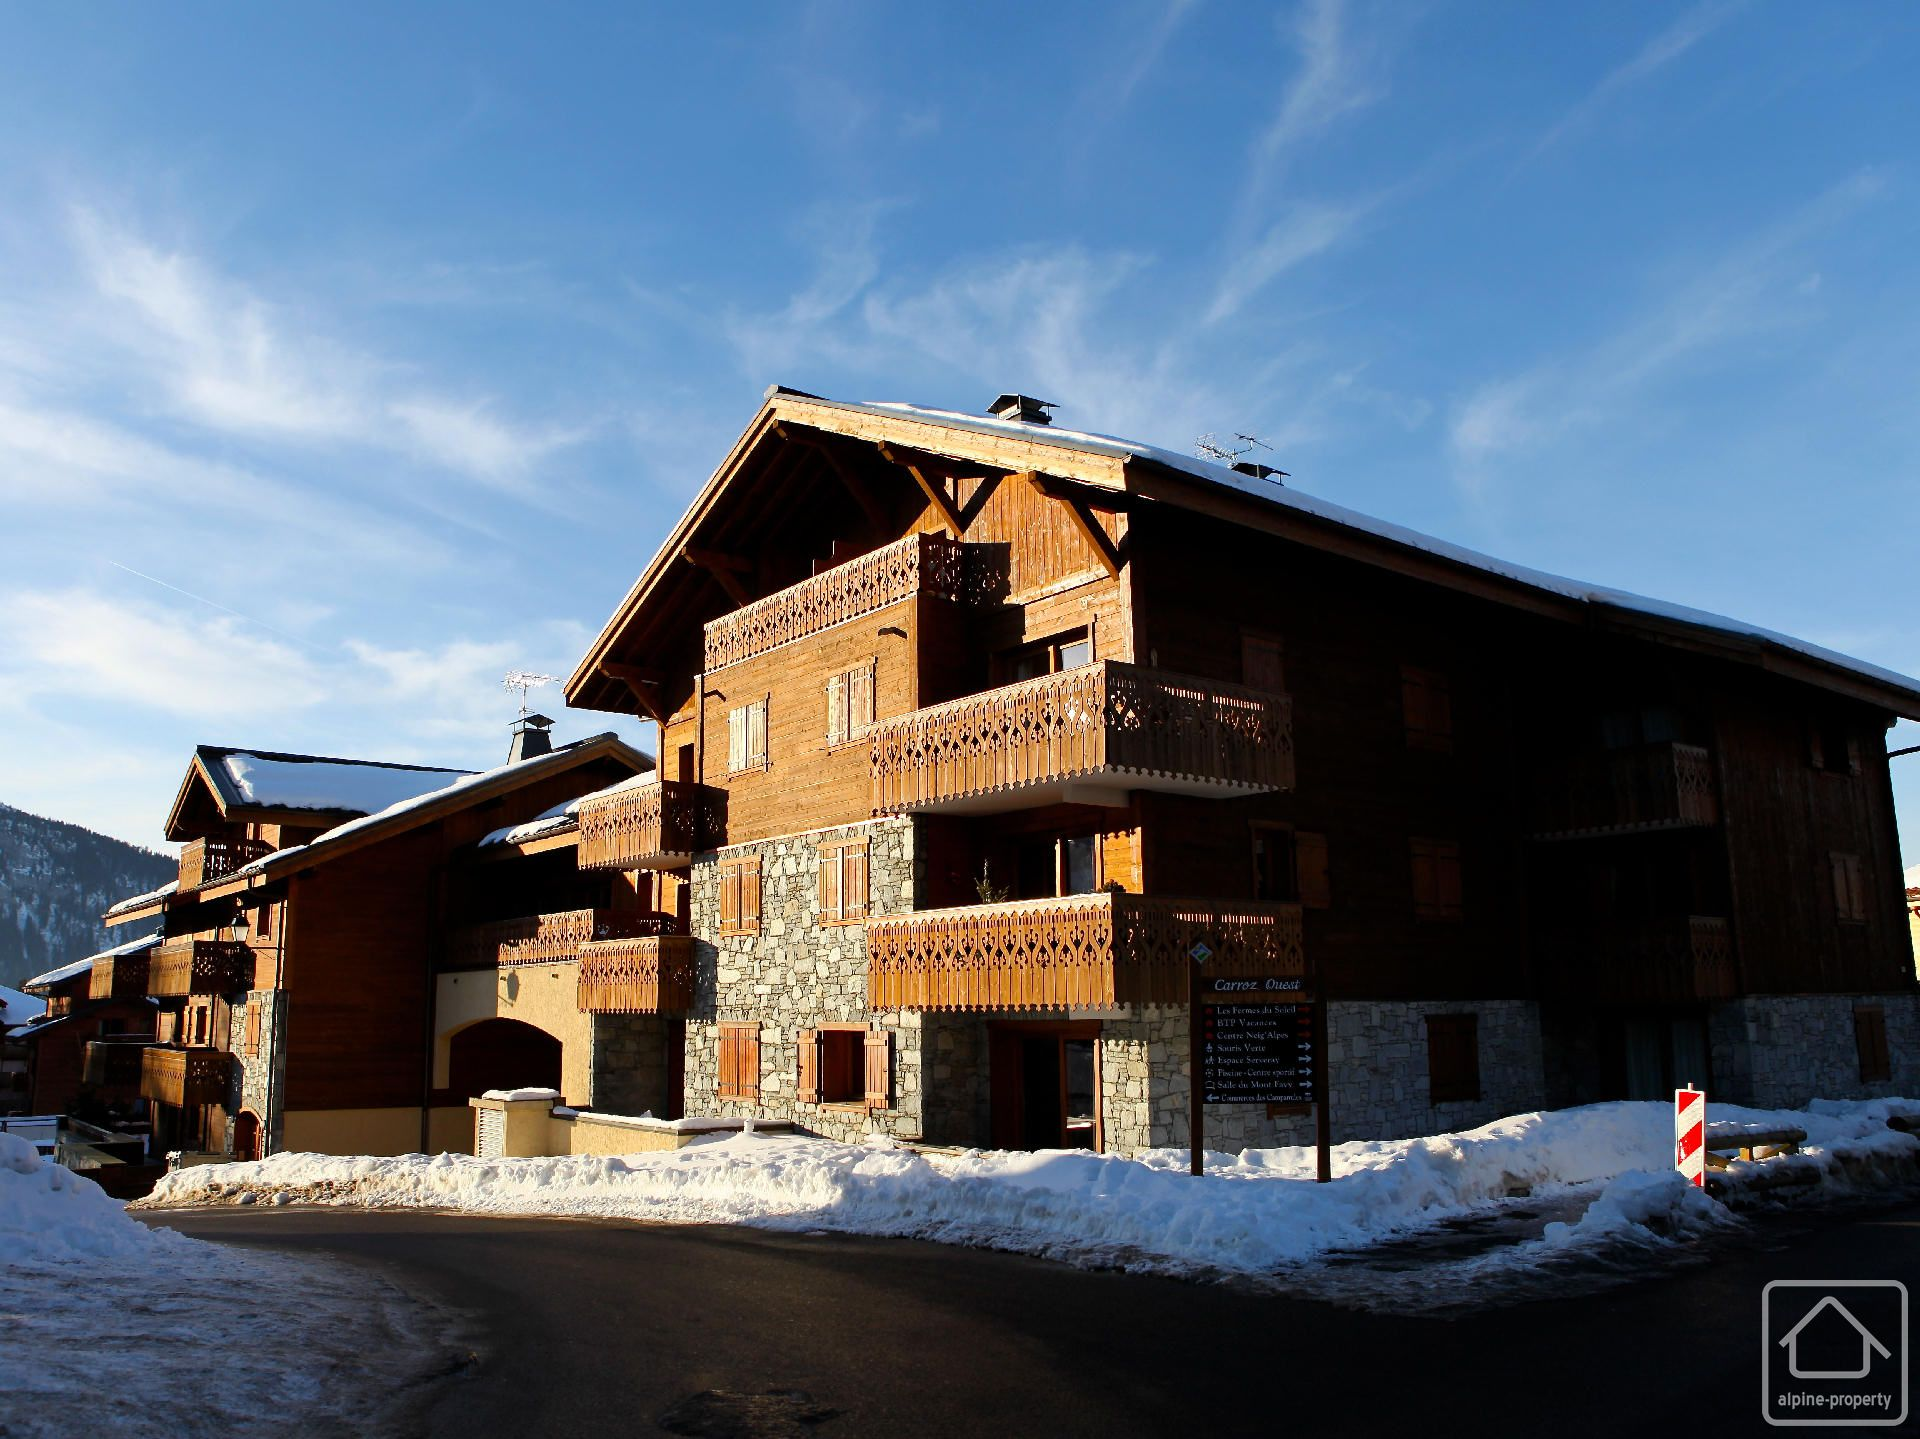 Appt cristalli res a alpine property estate agent in the french alps - Garage du ski les carroz ...